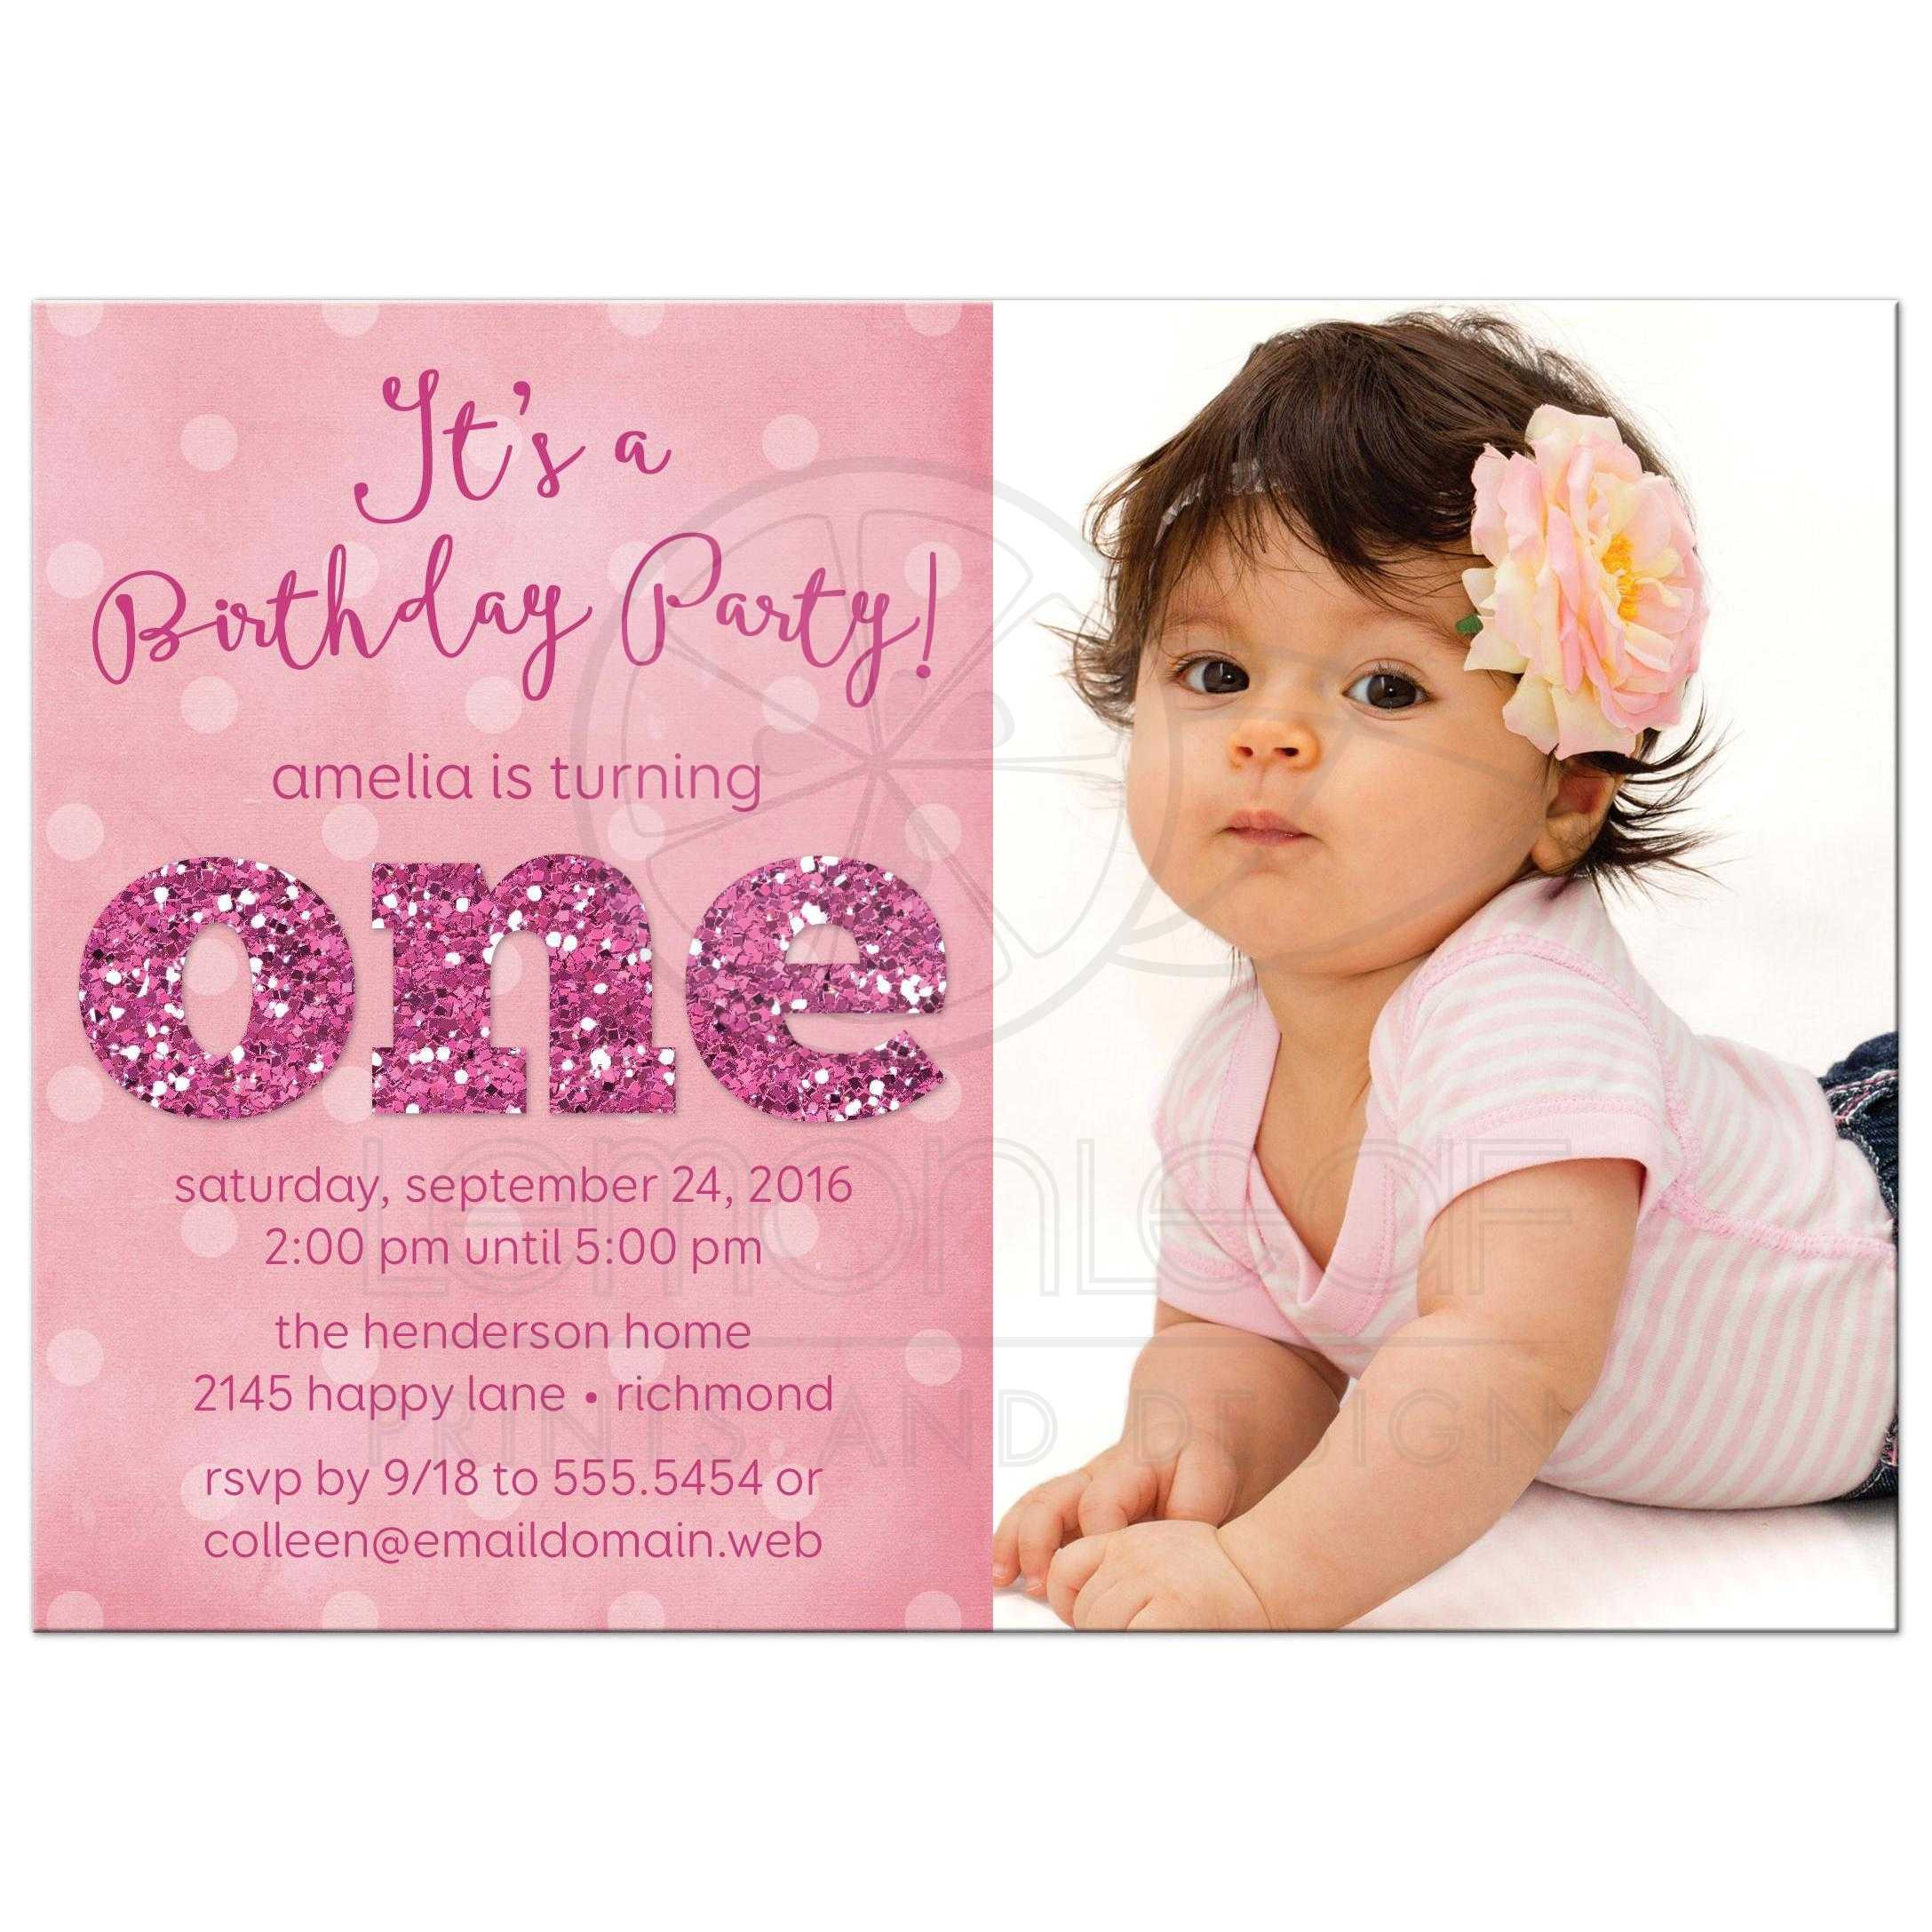 1st birthday photo invitations ; Baby-Girl-1St-Birthday-Invitations-to-inspire-you-how-to-create-the-birthday-Invitation-with-the-best-way-4